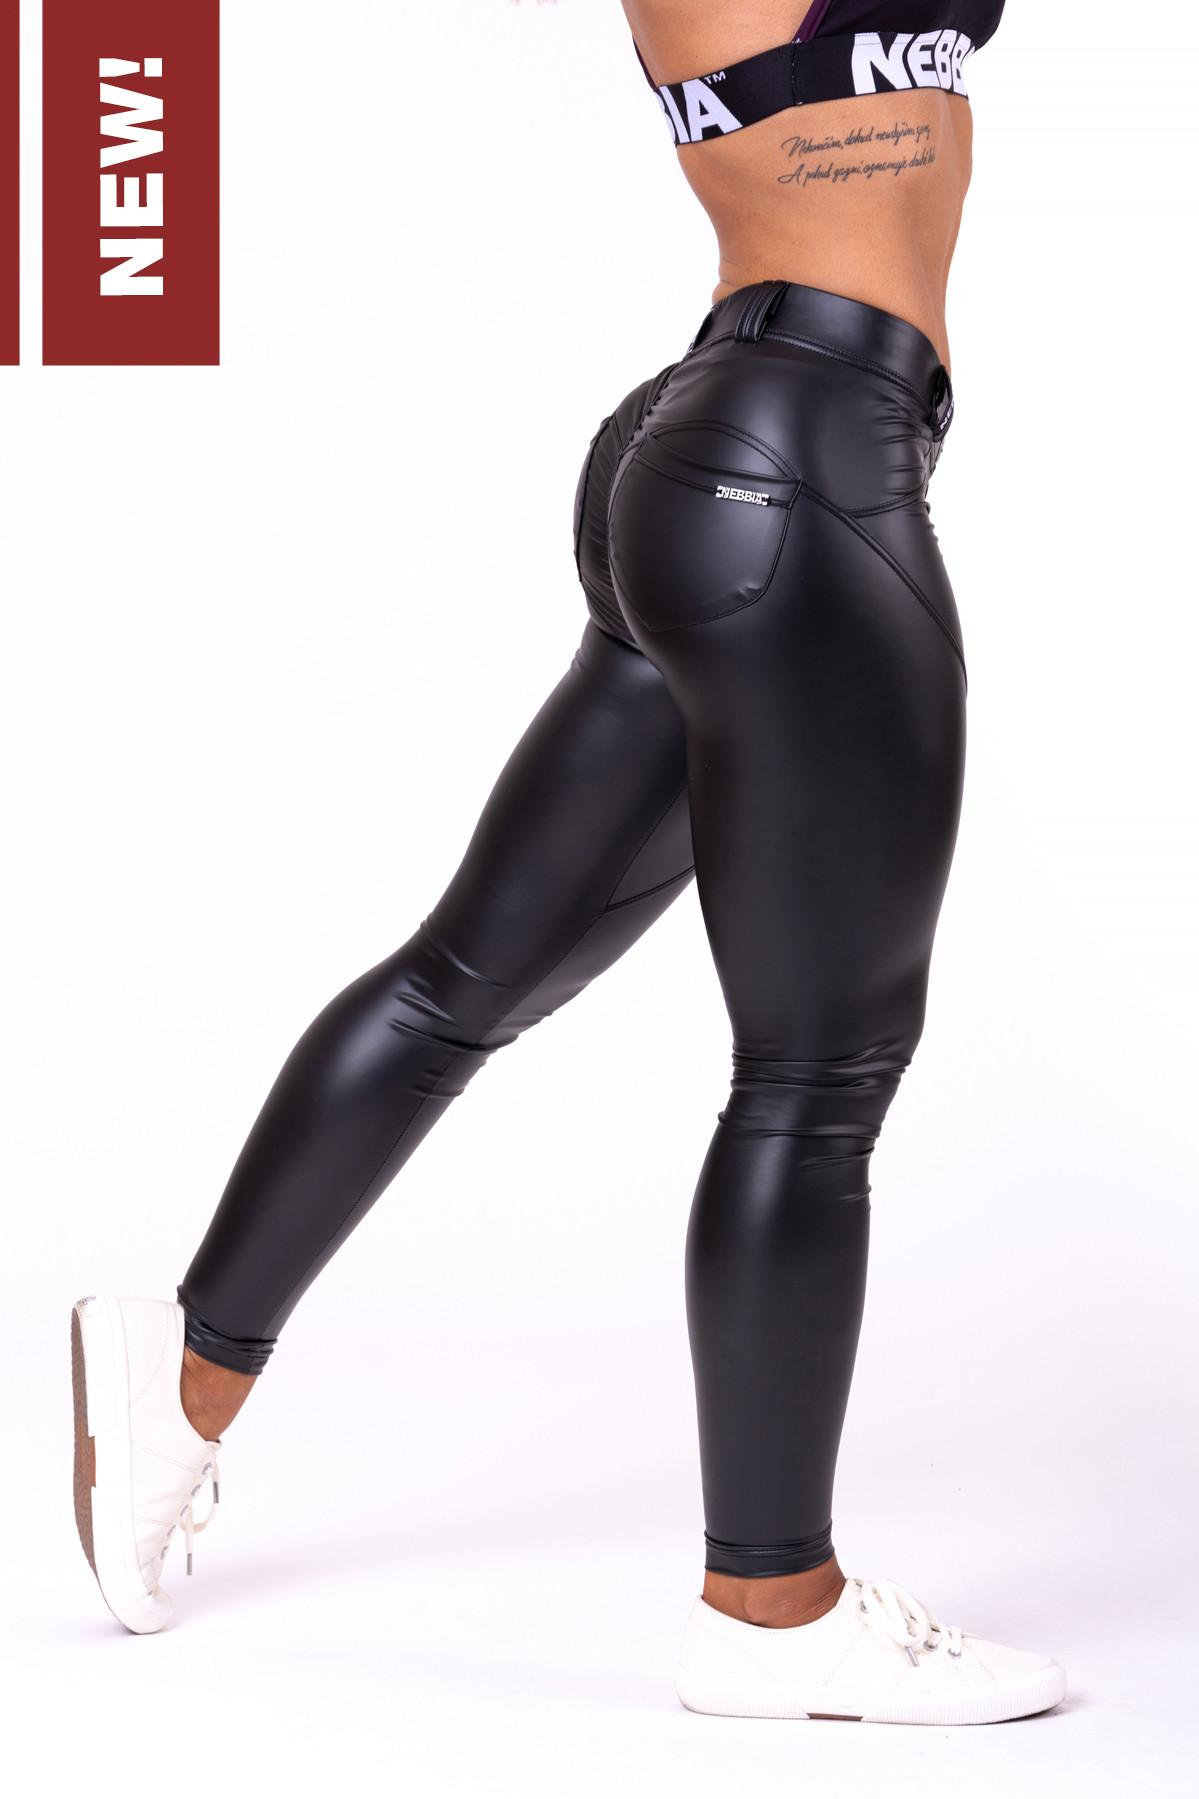 "Pantalone effetto bubble - 669 -  NEBBIA Bubble Butt pants ""Cat Woman"""